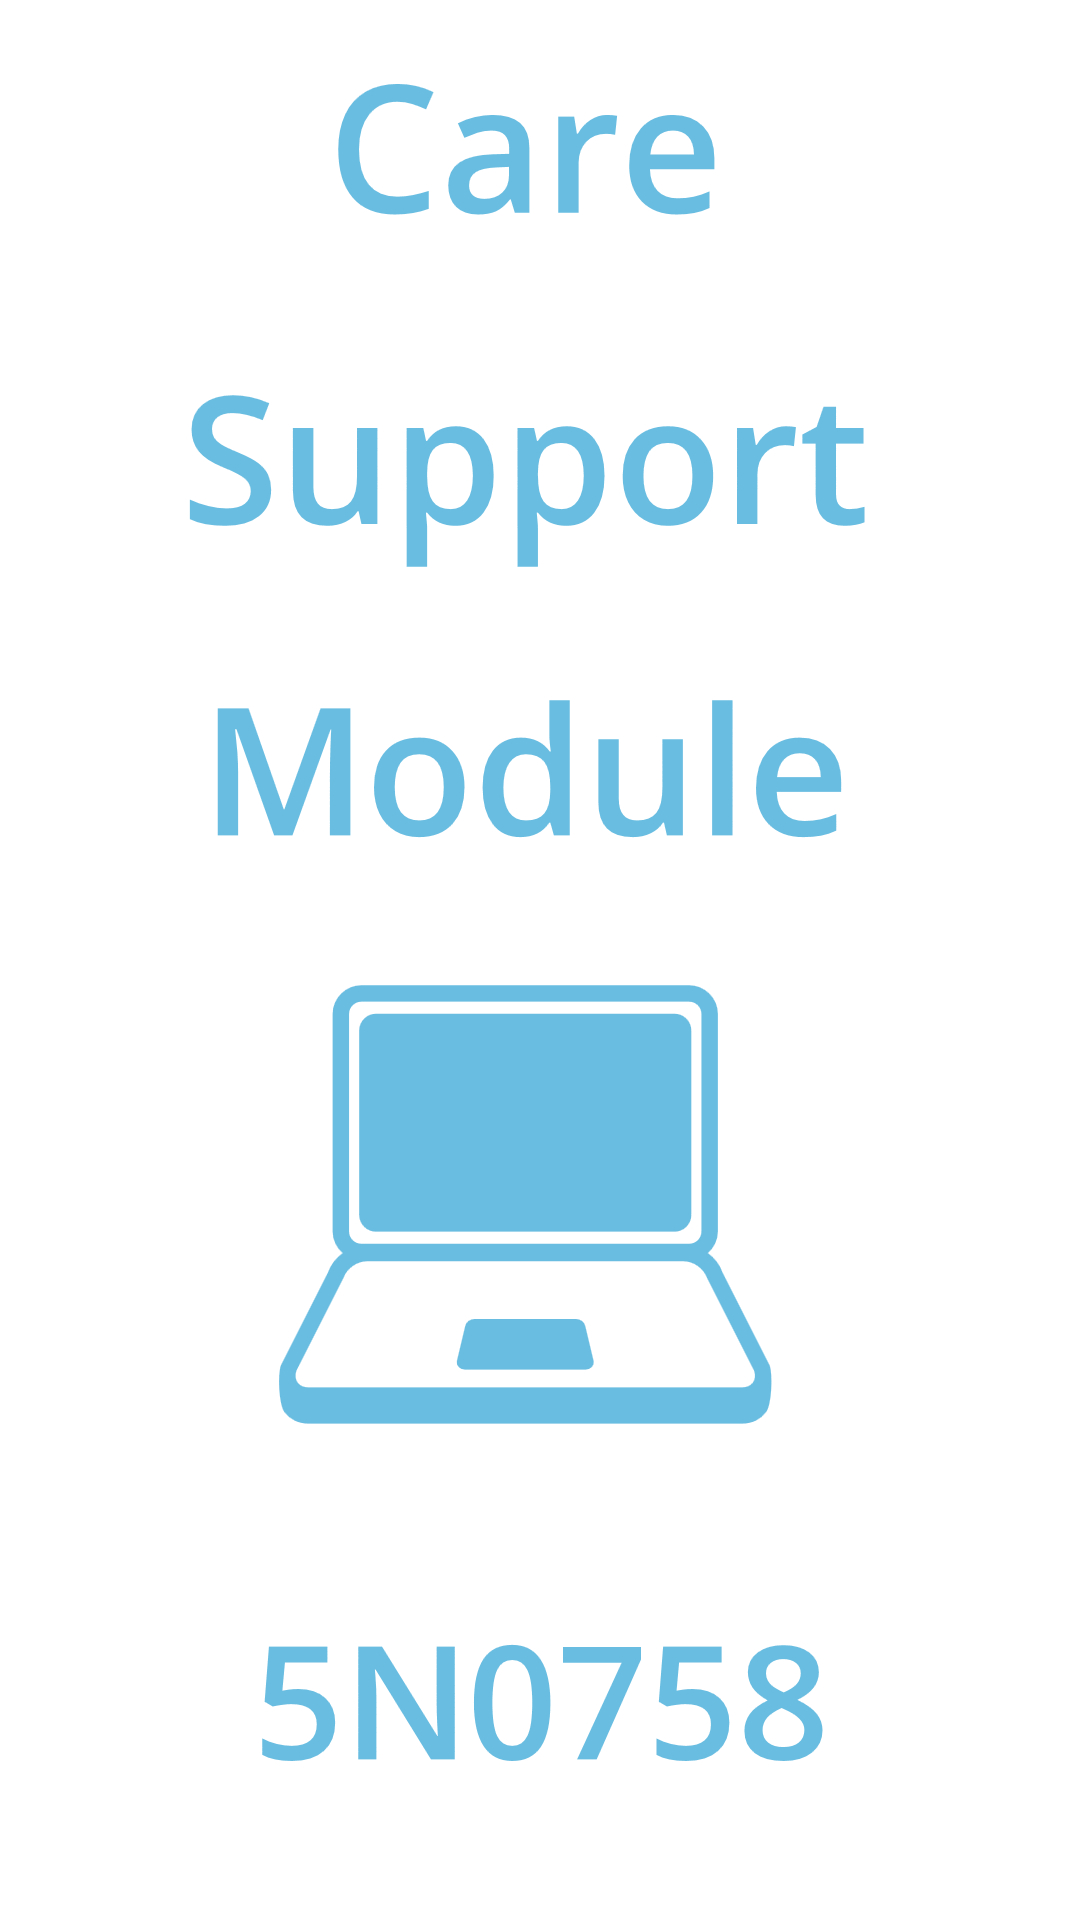 care support